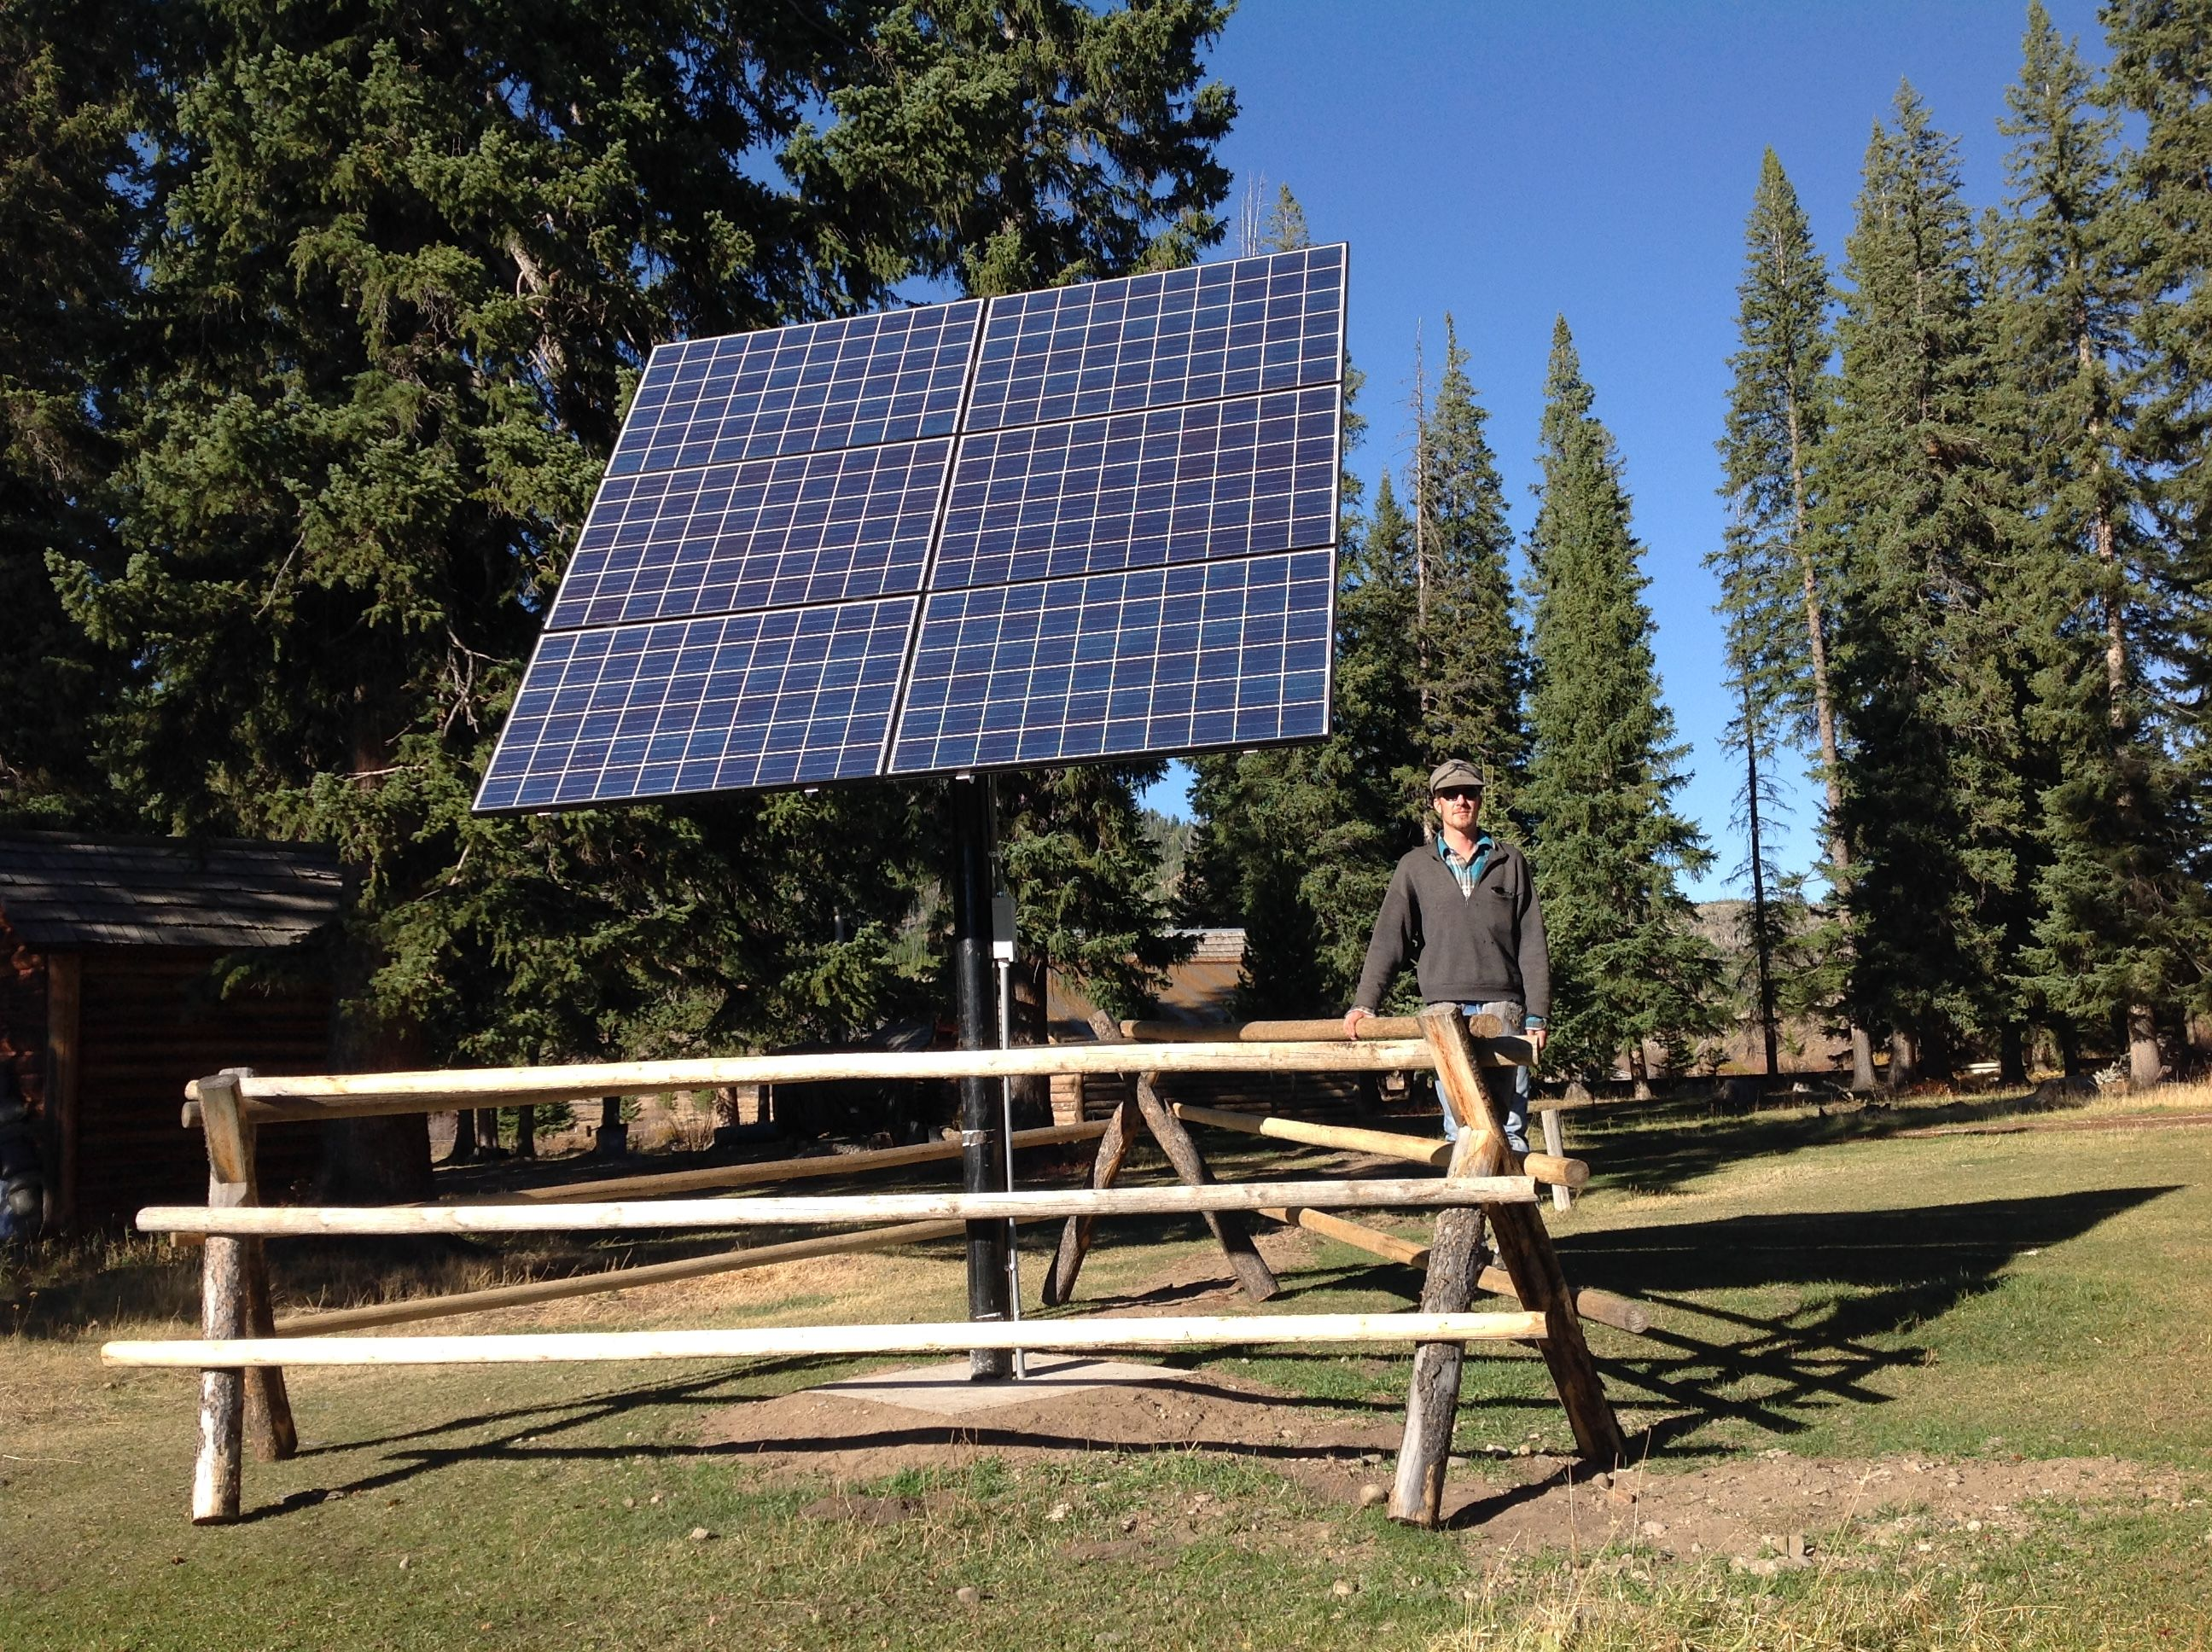 Horse-Drawn Wagons Bring Solar to Remote Montana Ranch